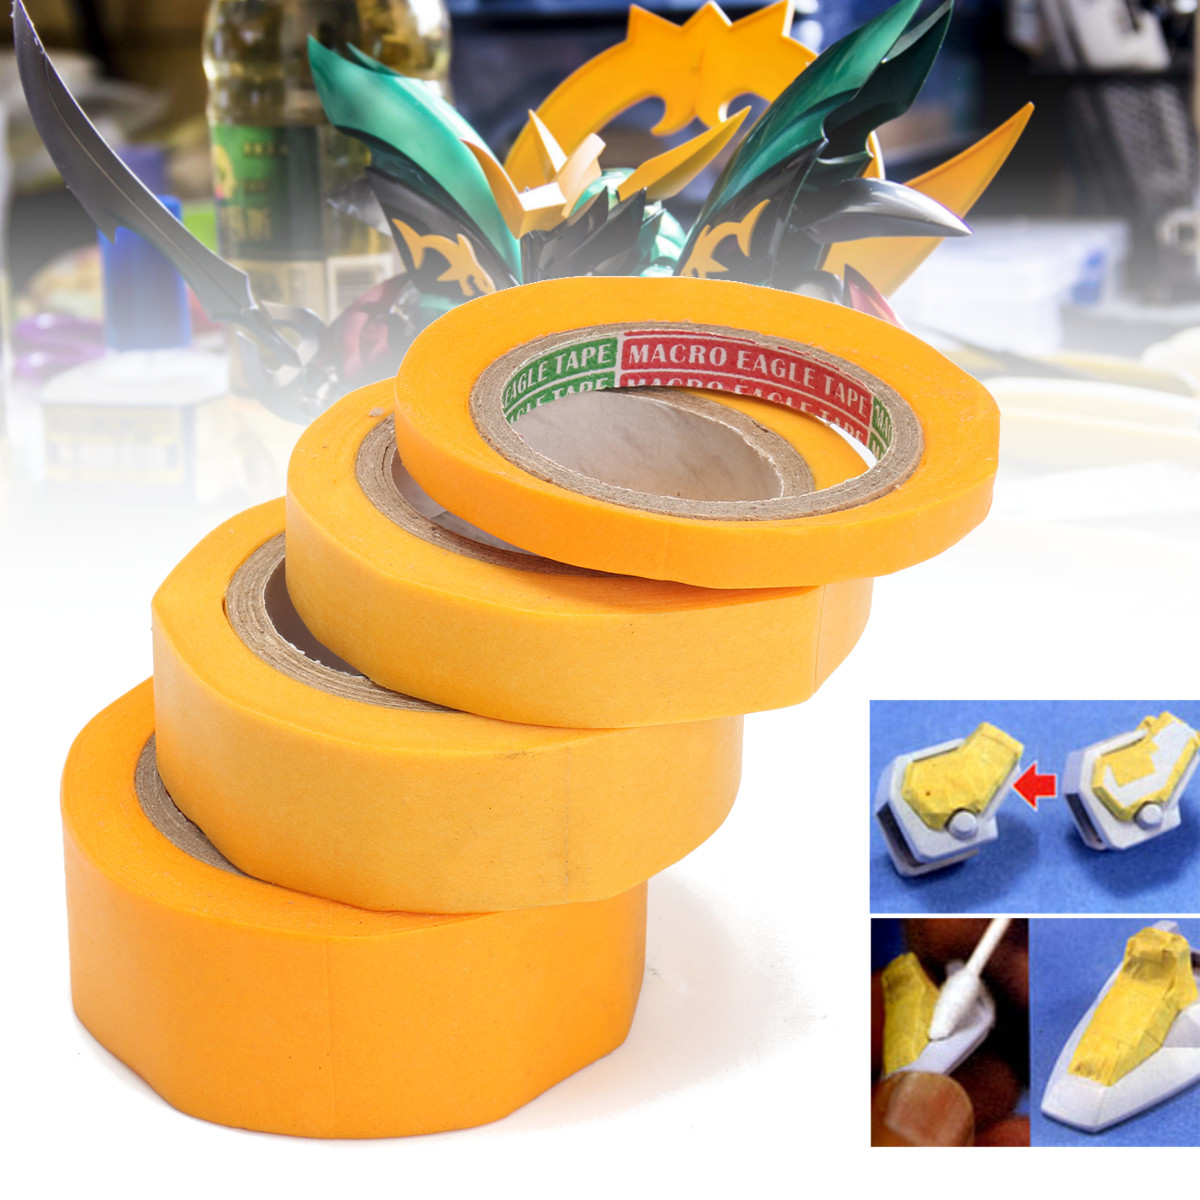 4Pcs/Set Yellow Masking Tape DIY Craft Modeler Car Model Tools Paint Car Painting Wall Painting Office Accessories Decoration